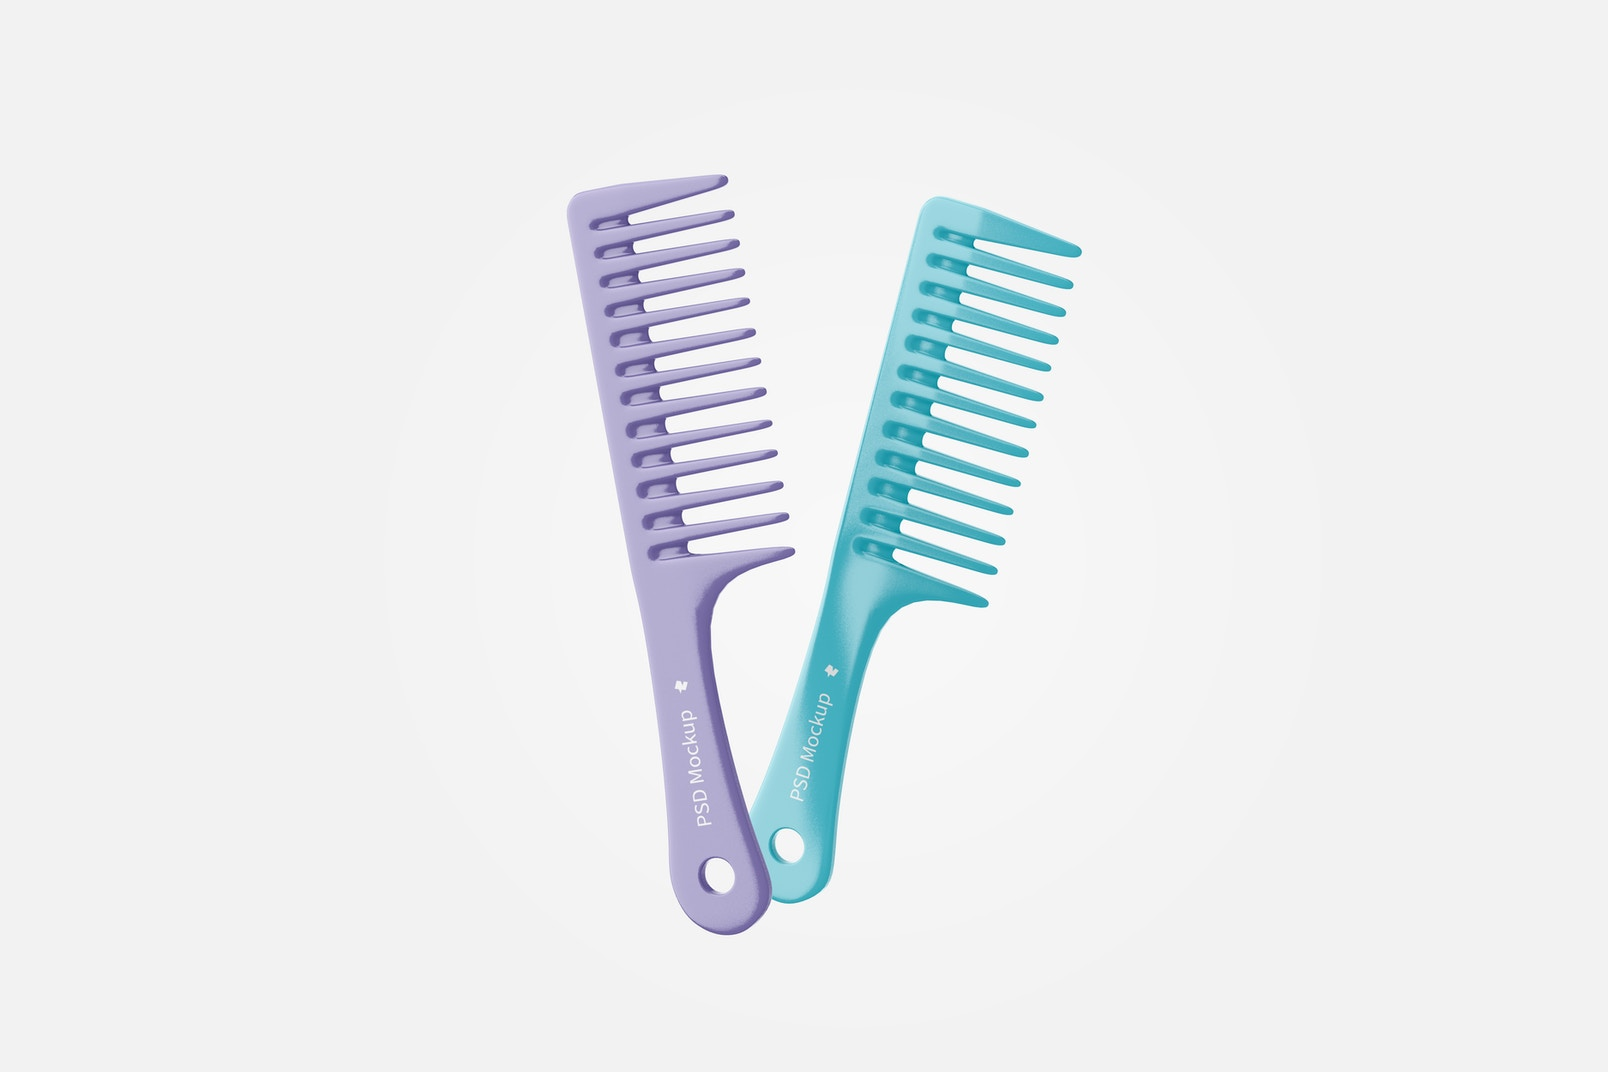 Wide Tooth Combs Mockup, Floating